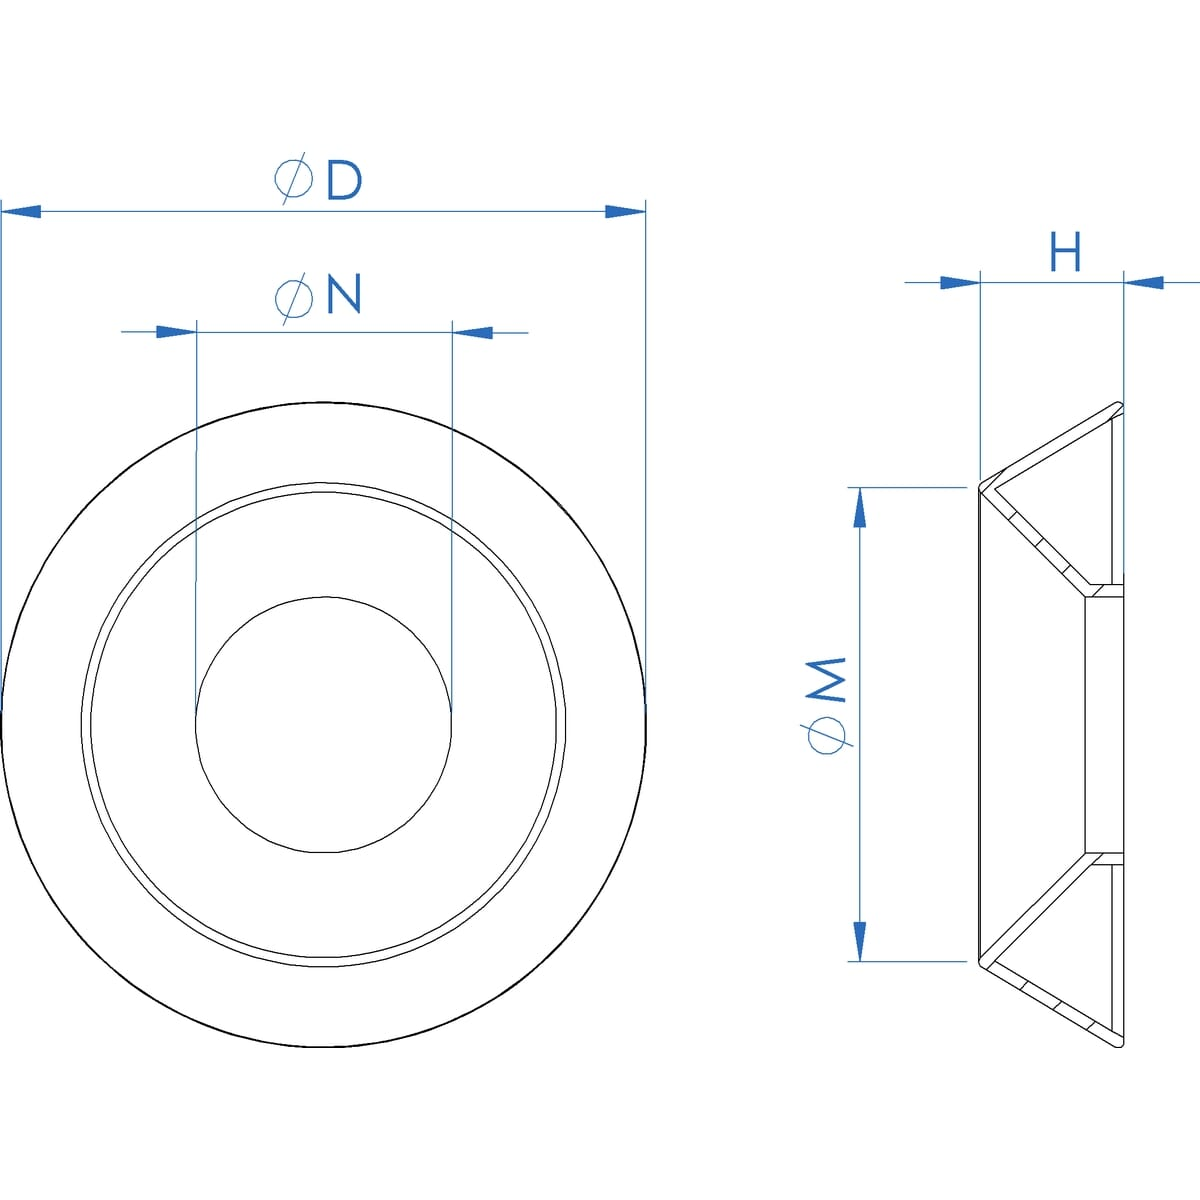 M5 Countersunk Washers (NF E 27-619) - Stainless Steel (A2) Drawing